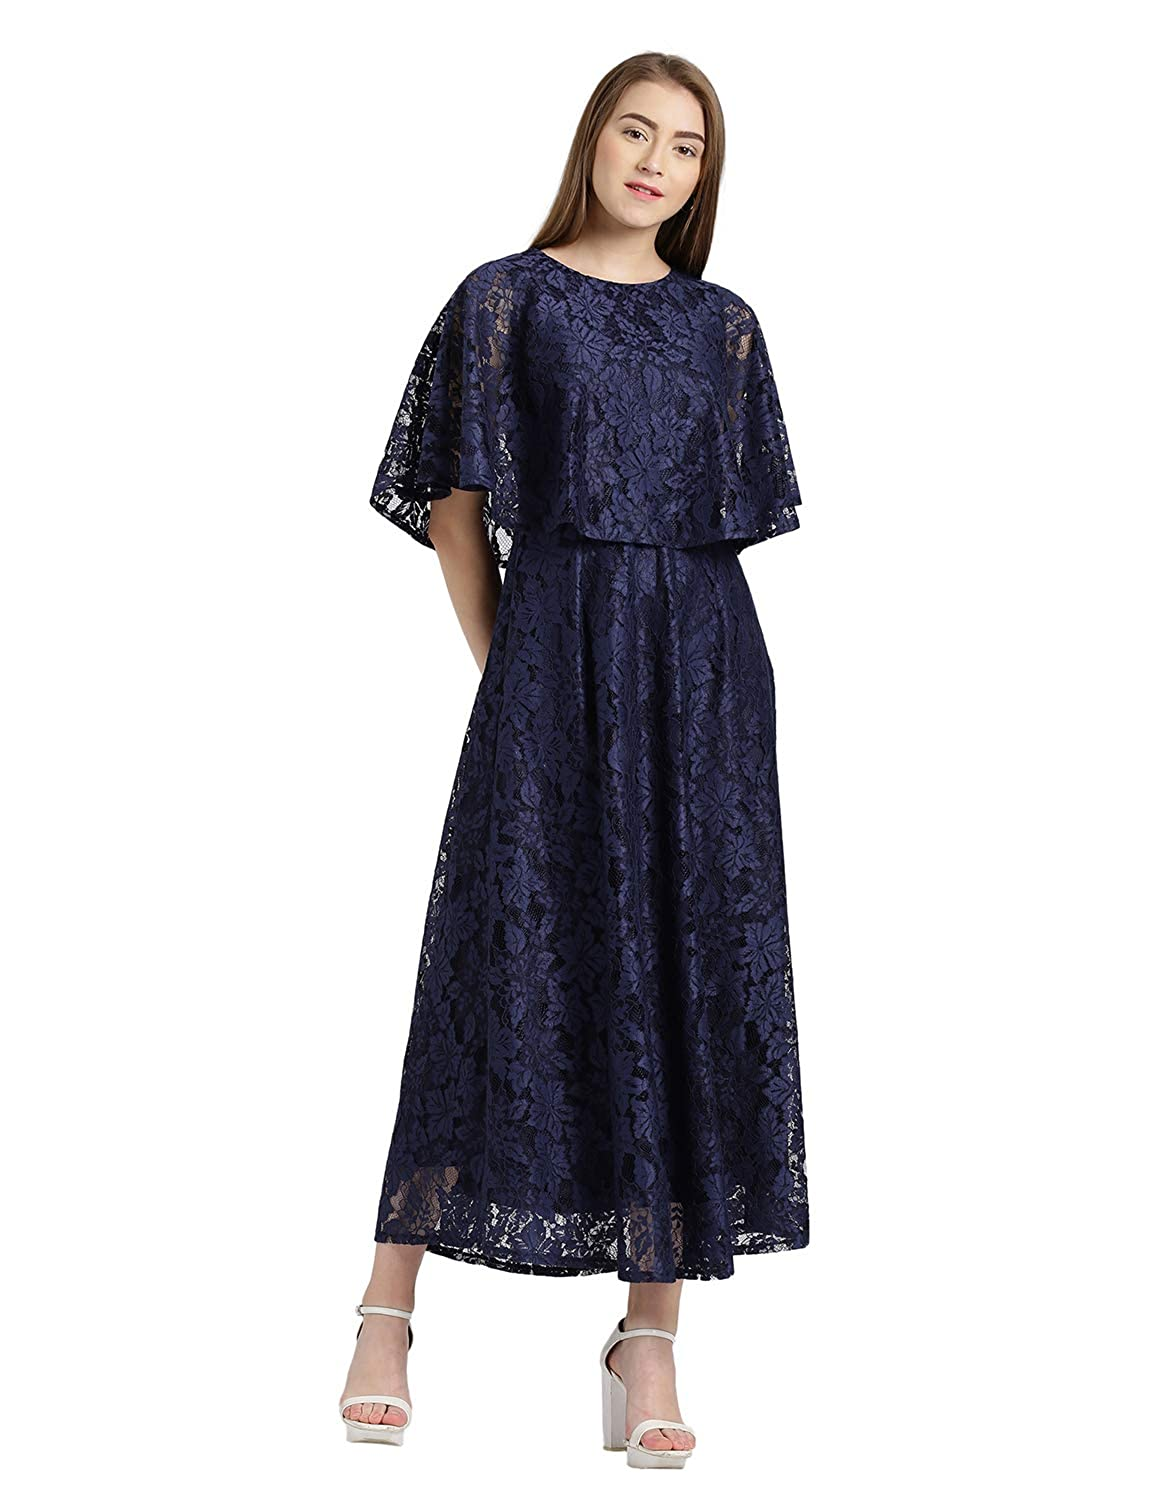 f6155e352a2ae Zink London Navy Cape Style Maxi Dress for Women (Small): Amazon.in:  Clothing & Accessories